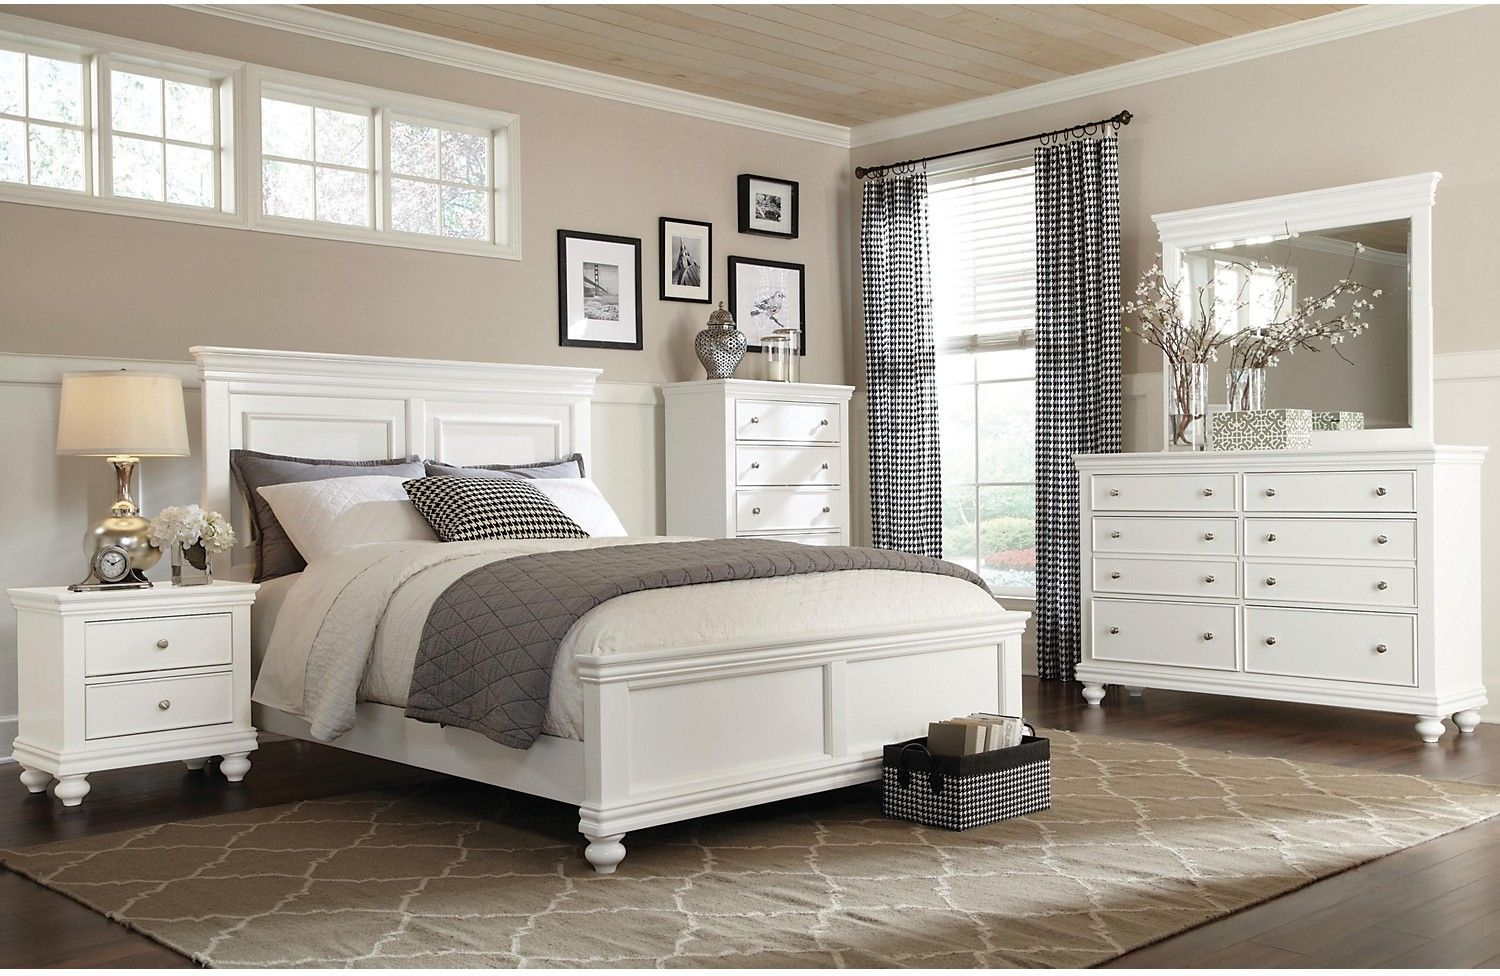 King Bedroom Sets Canada in 4  White bedroom set, White